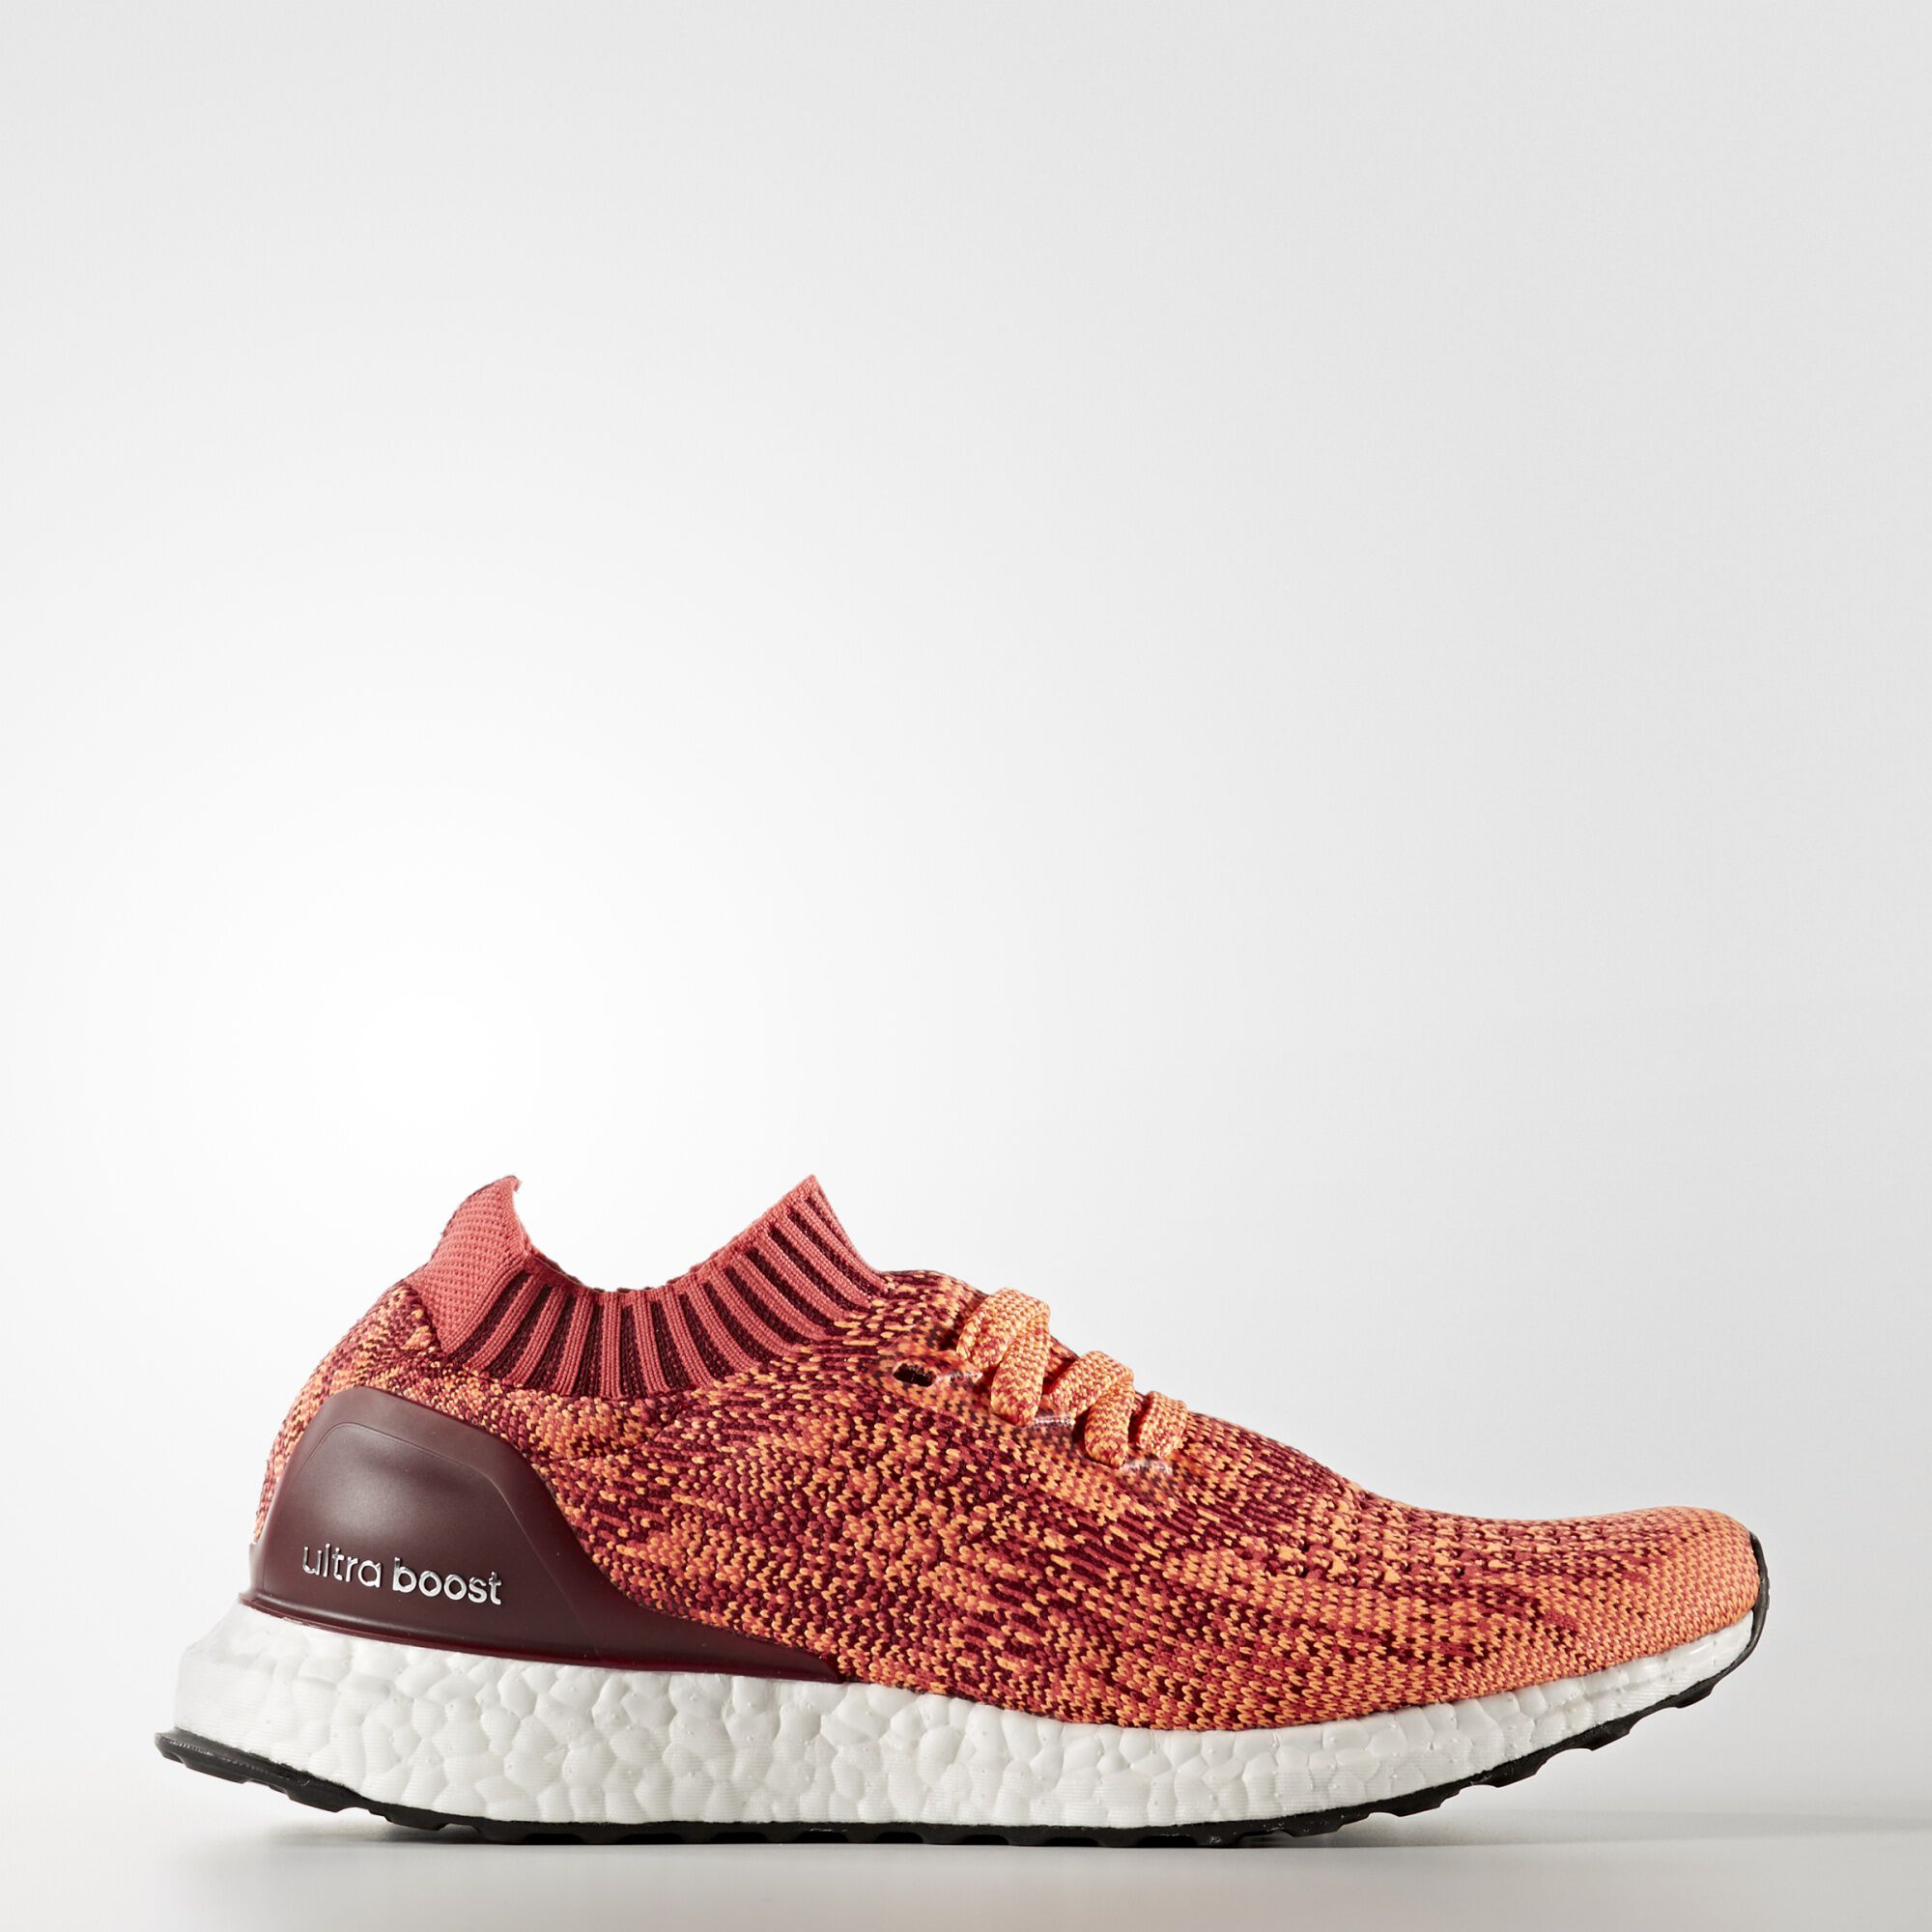 Adidas Boost Uncaged